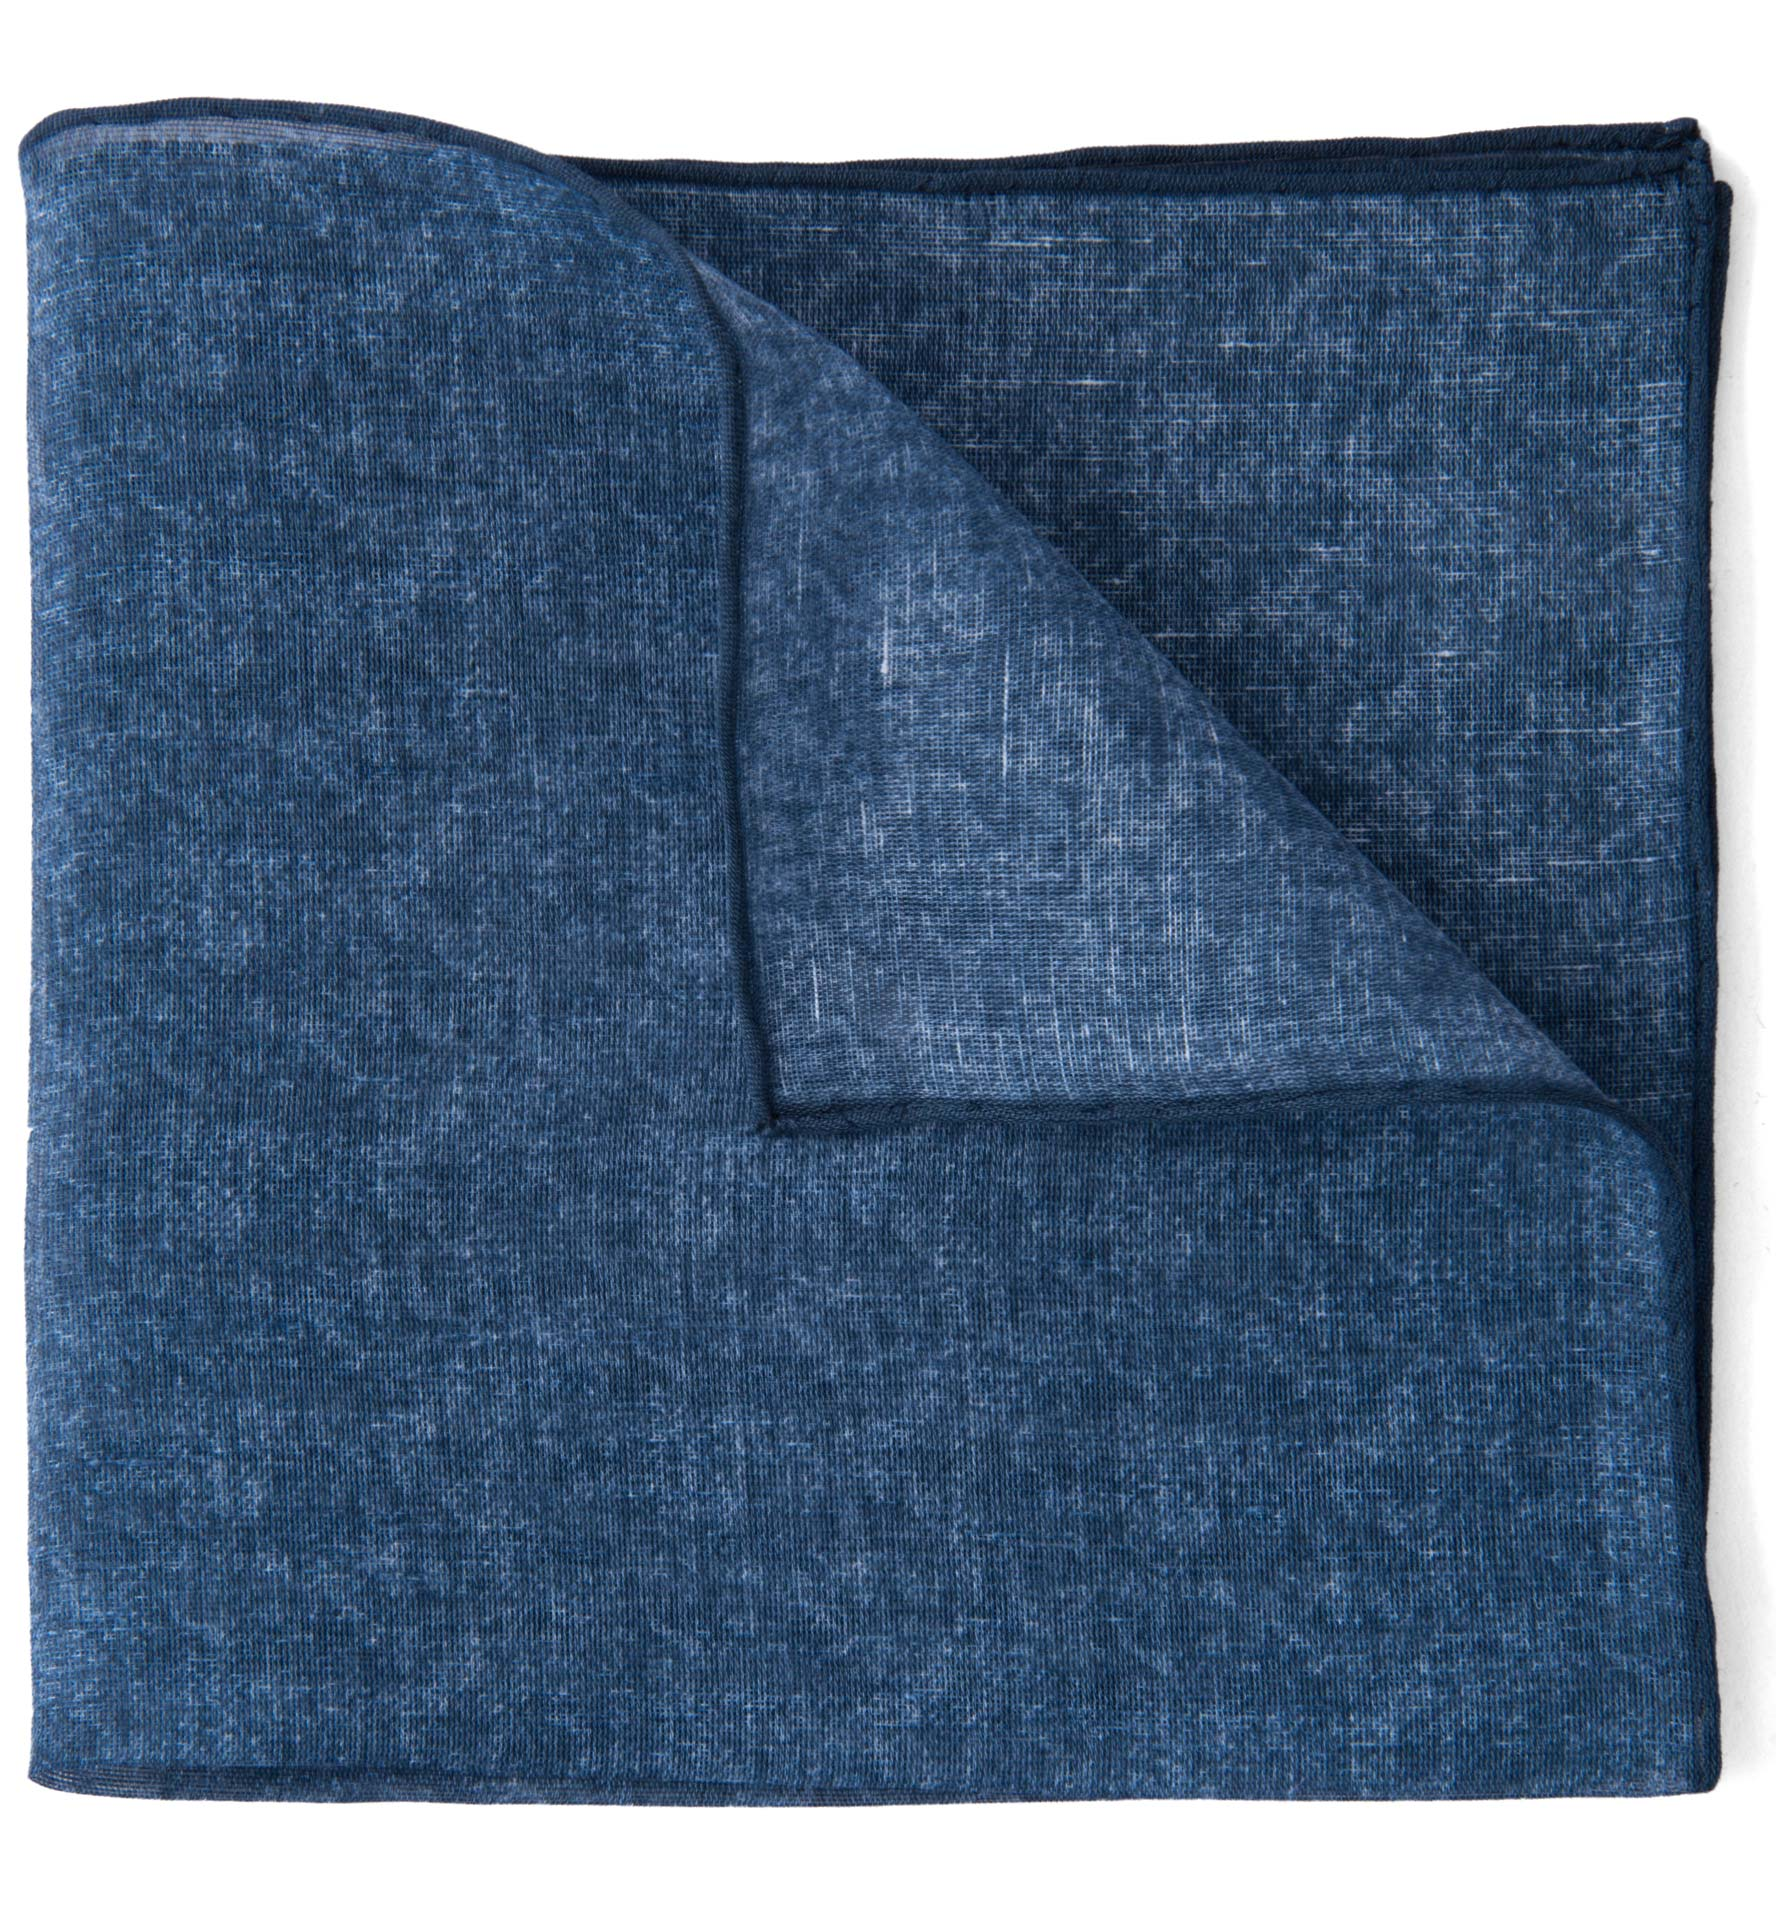 Zoom Image of Navy Cotton Linen Pocket Square